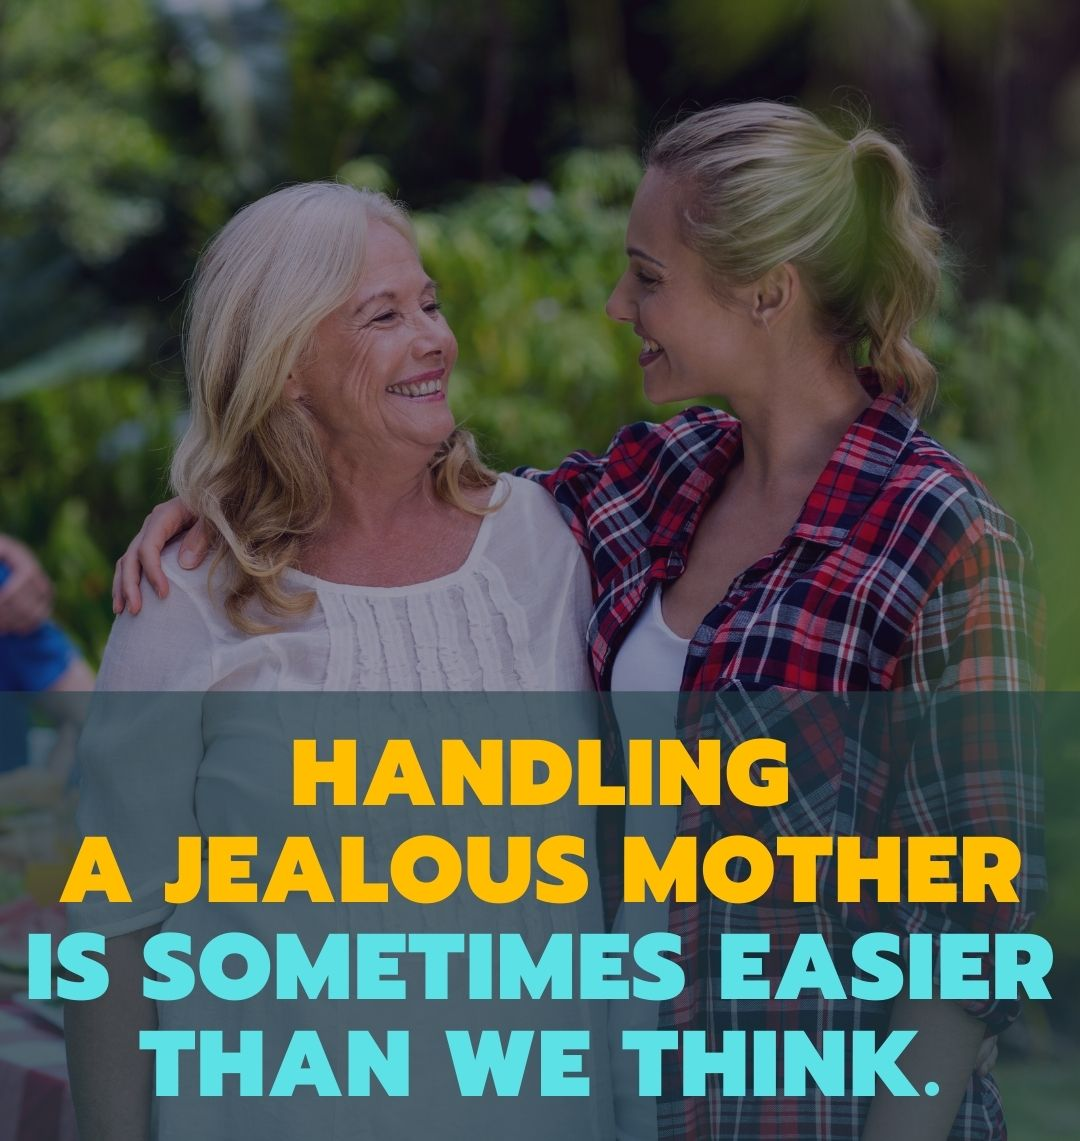 Handling a jealous mother is sometimes easier than we think.